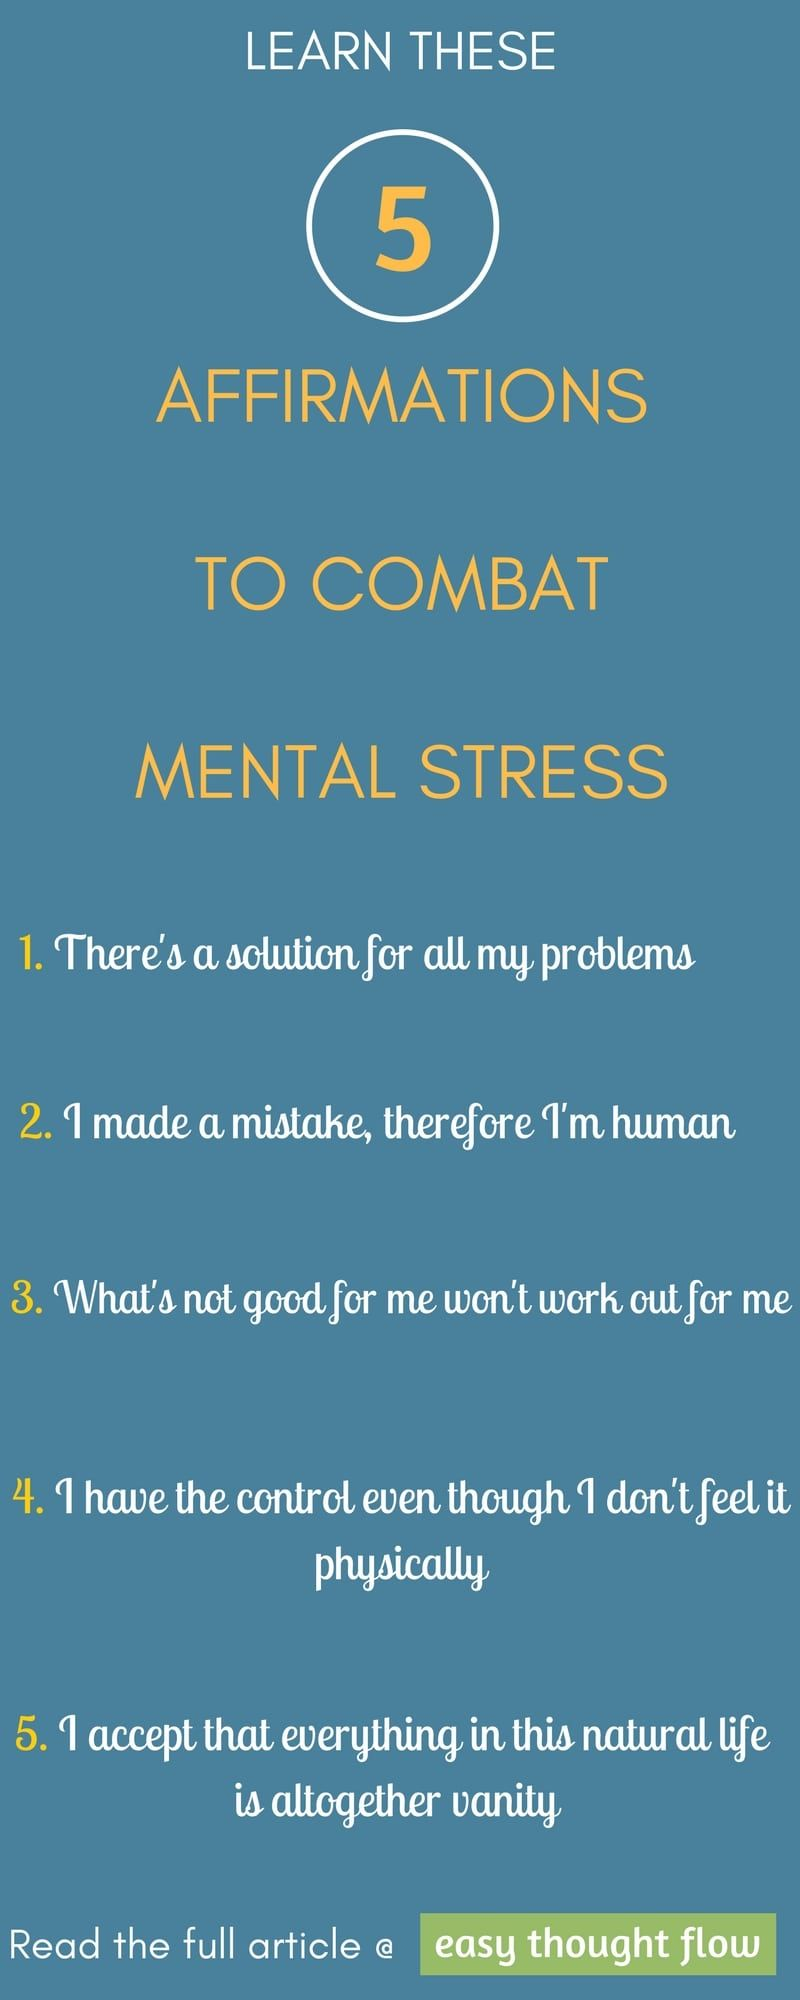 Five mighty affirmations that will combat mental stress positive